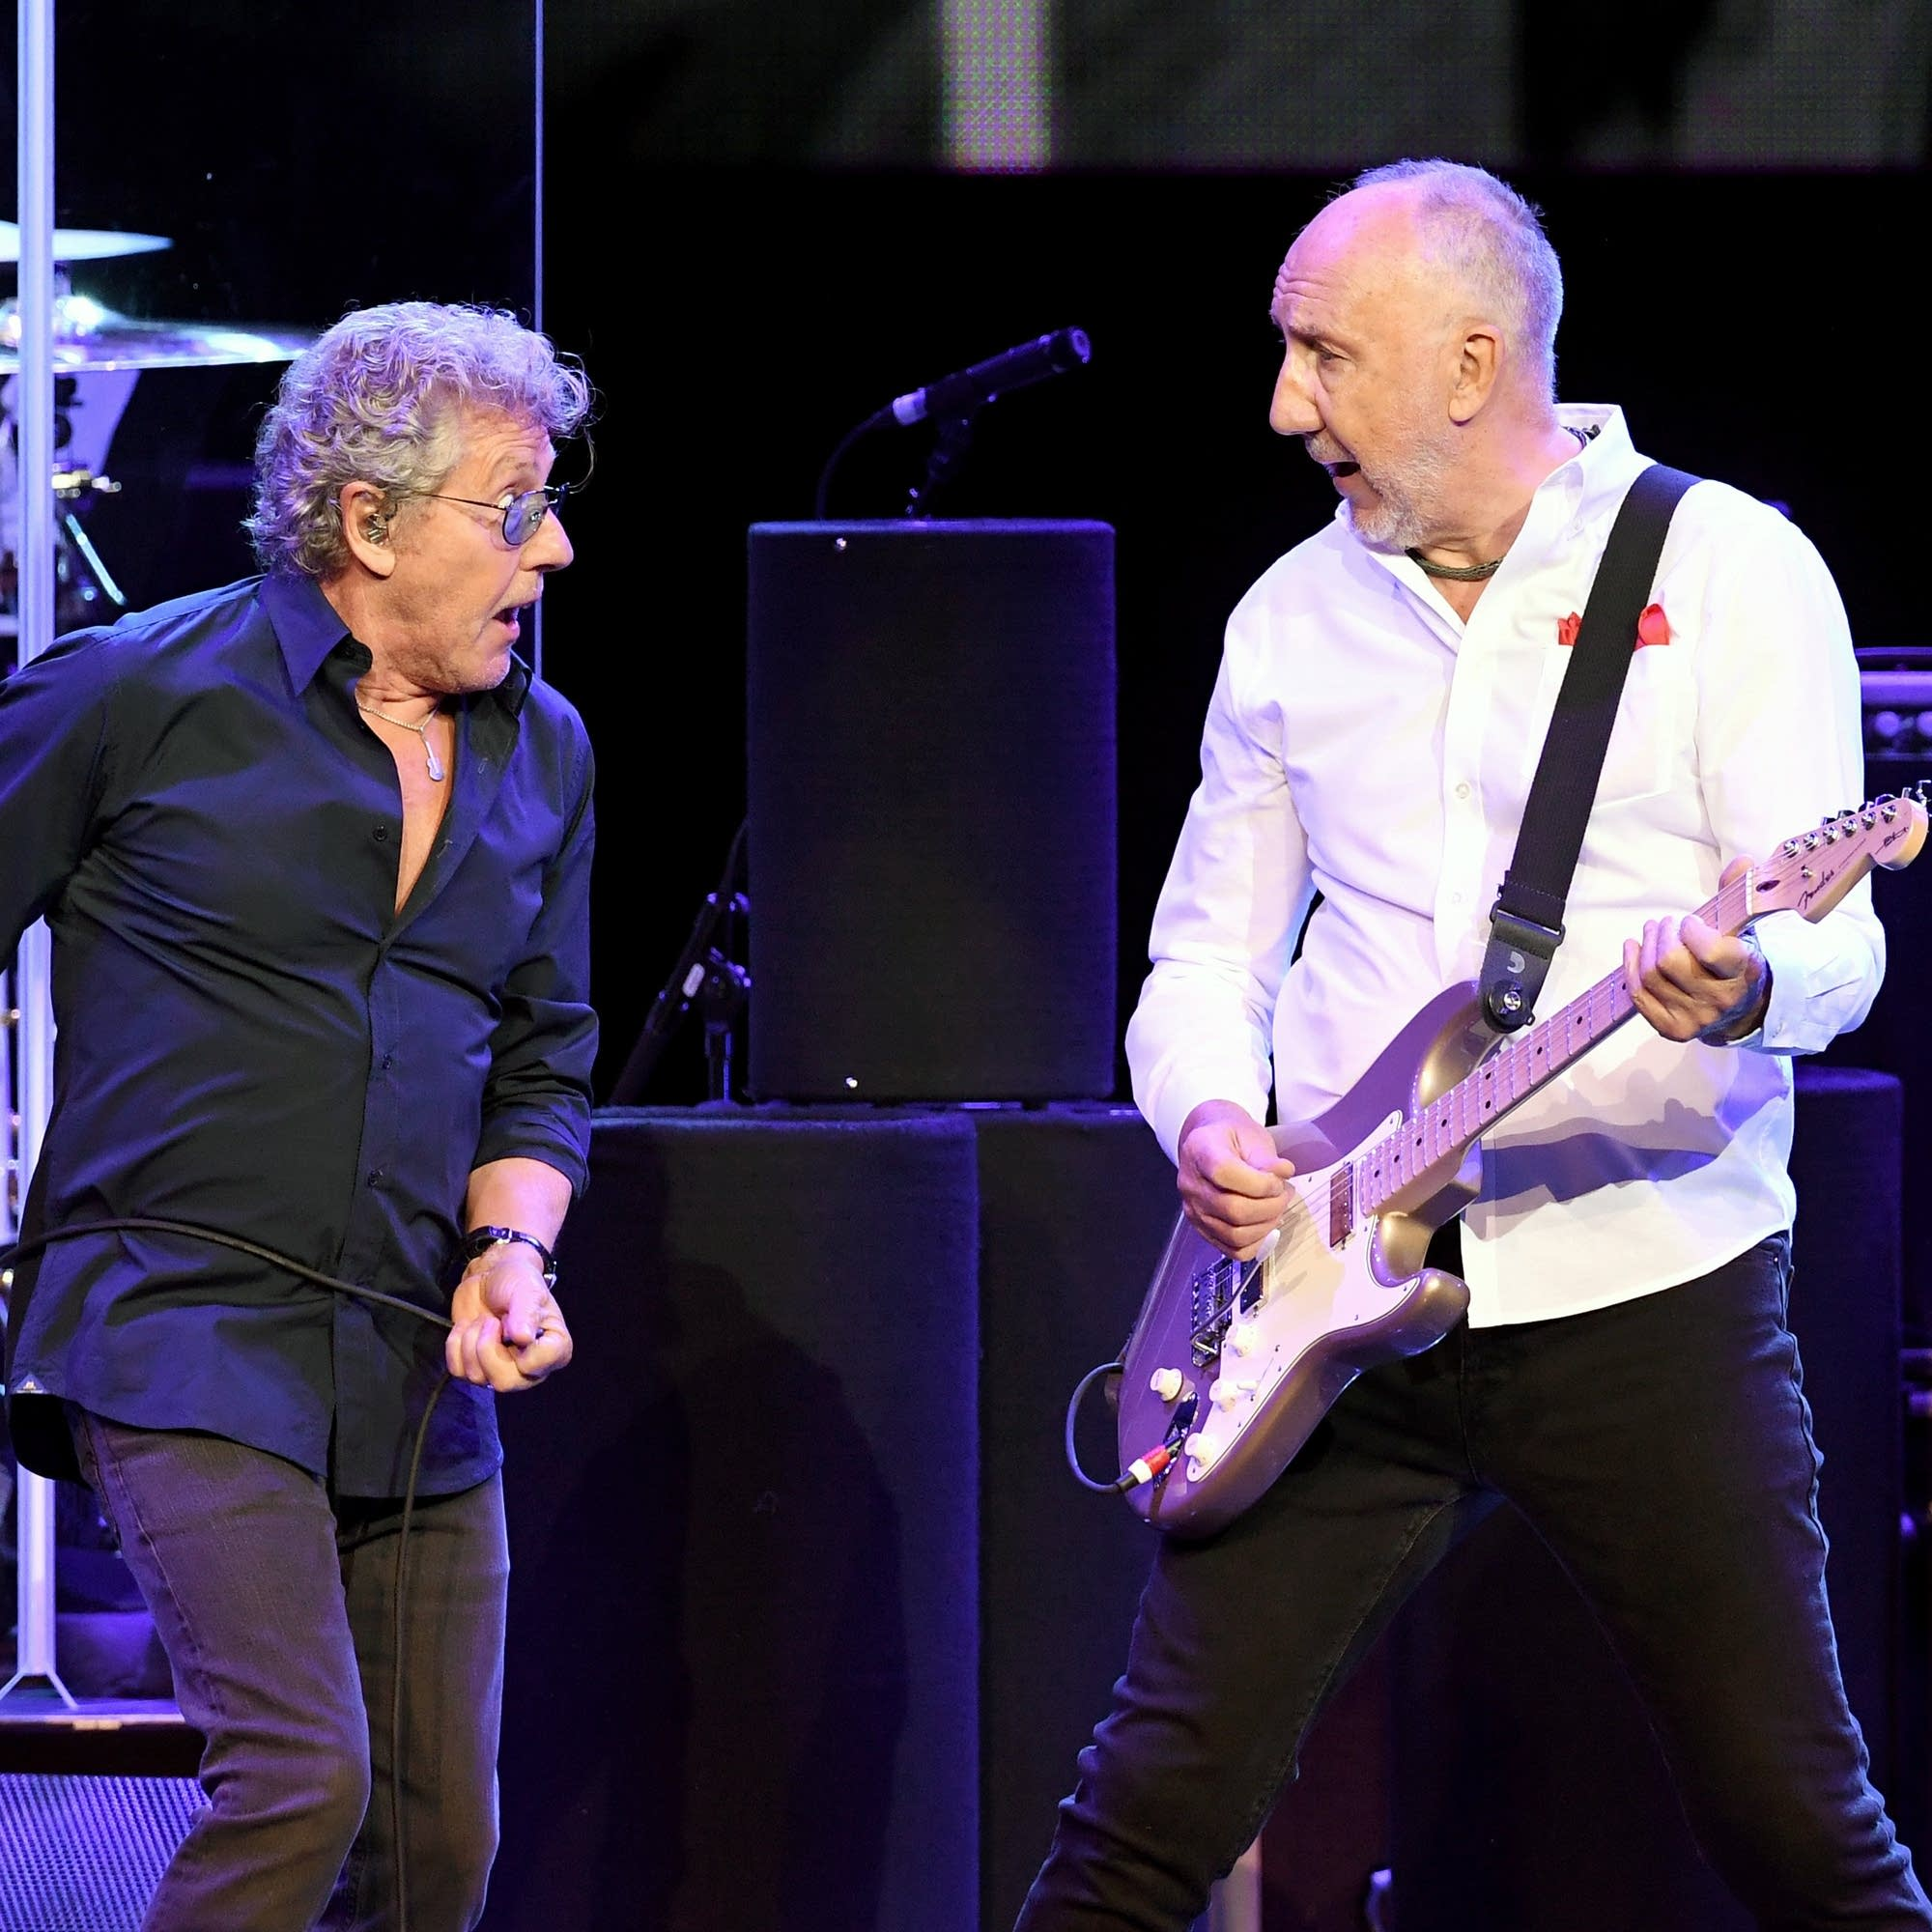 The Who perform in Las Vegas, 2017.